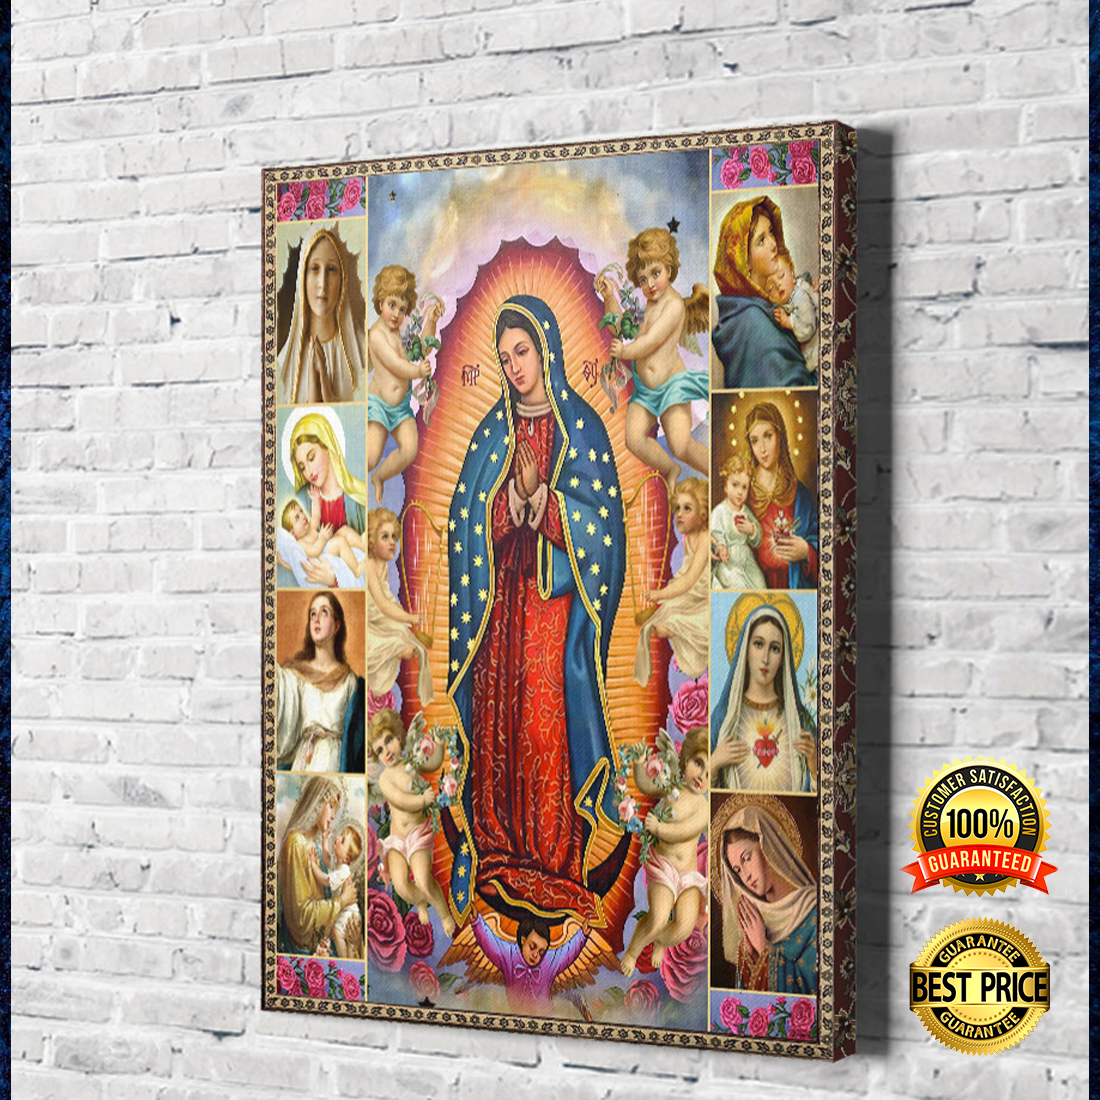 Our Lady of Guadalupe canvas 3